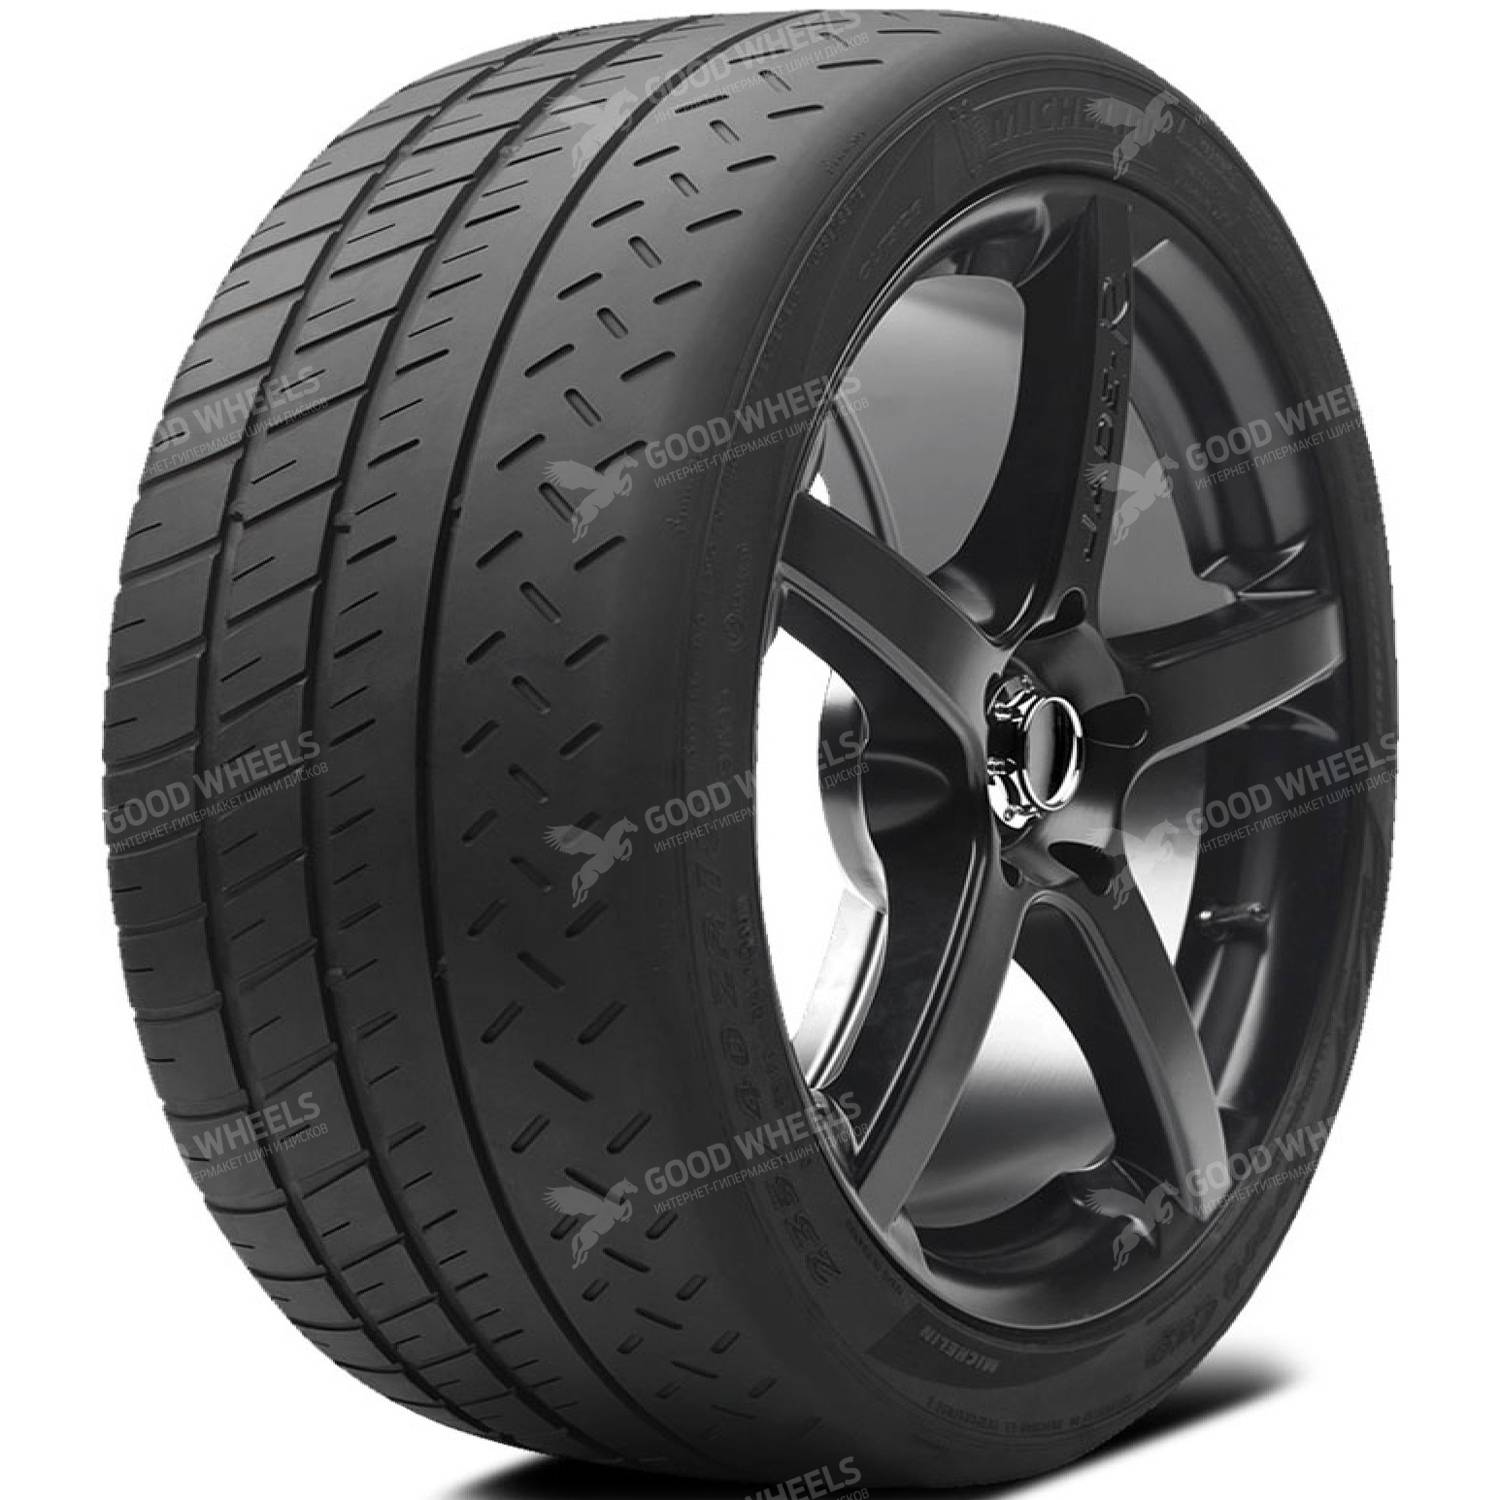 Michelin Pilot Sport Cup 225/40 R18 88Y